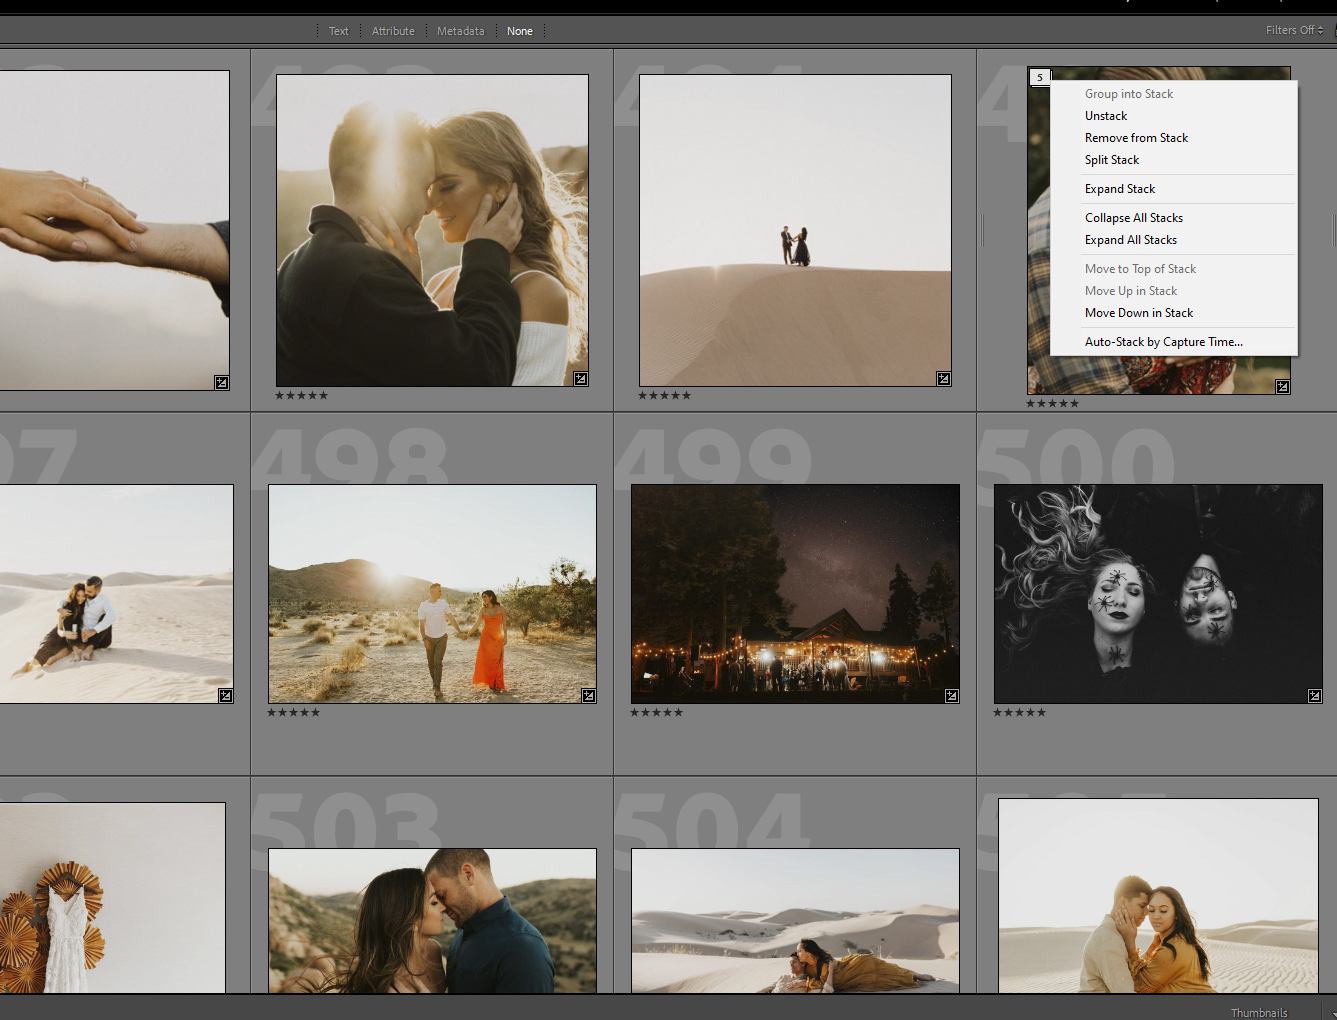 Expand stack and collapse stack in Lightroom